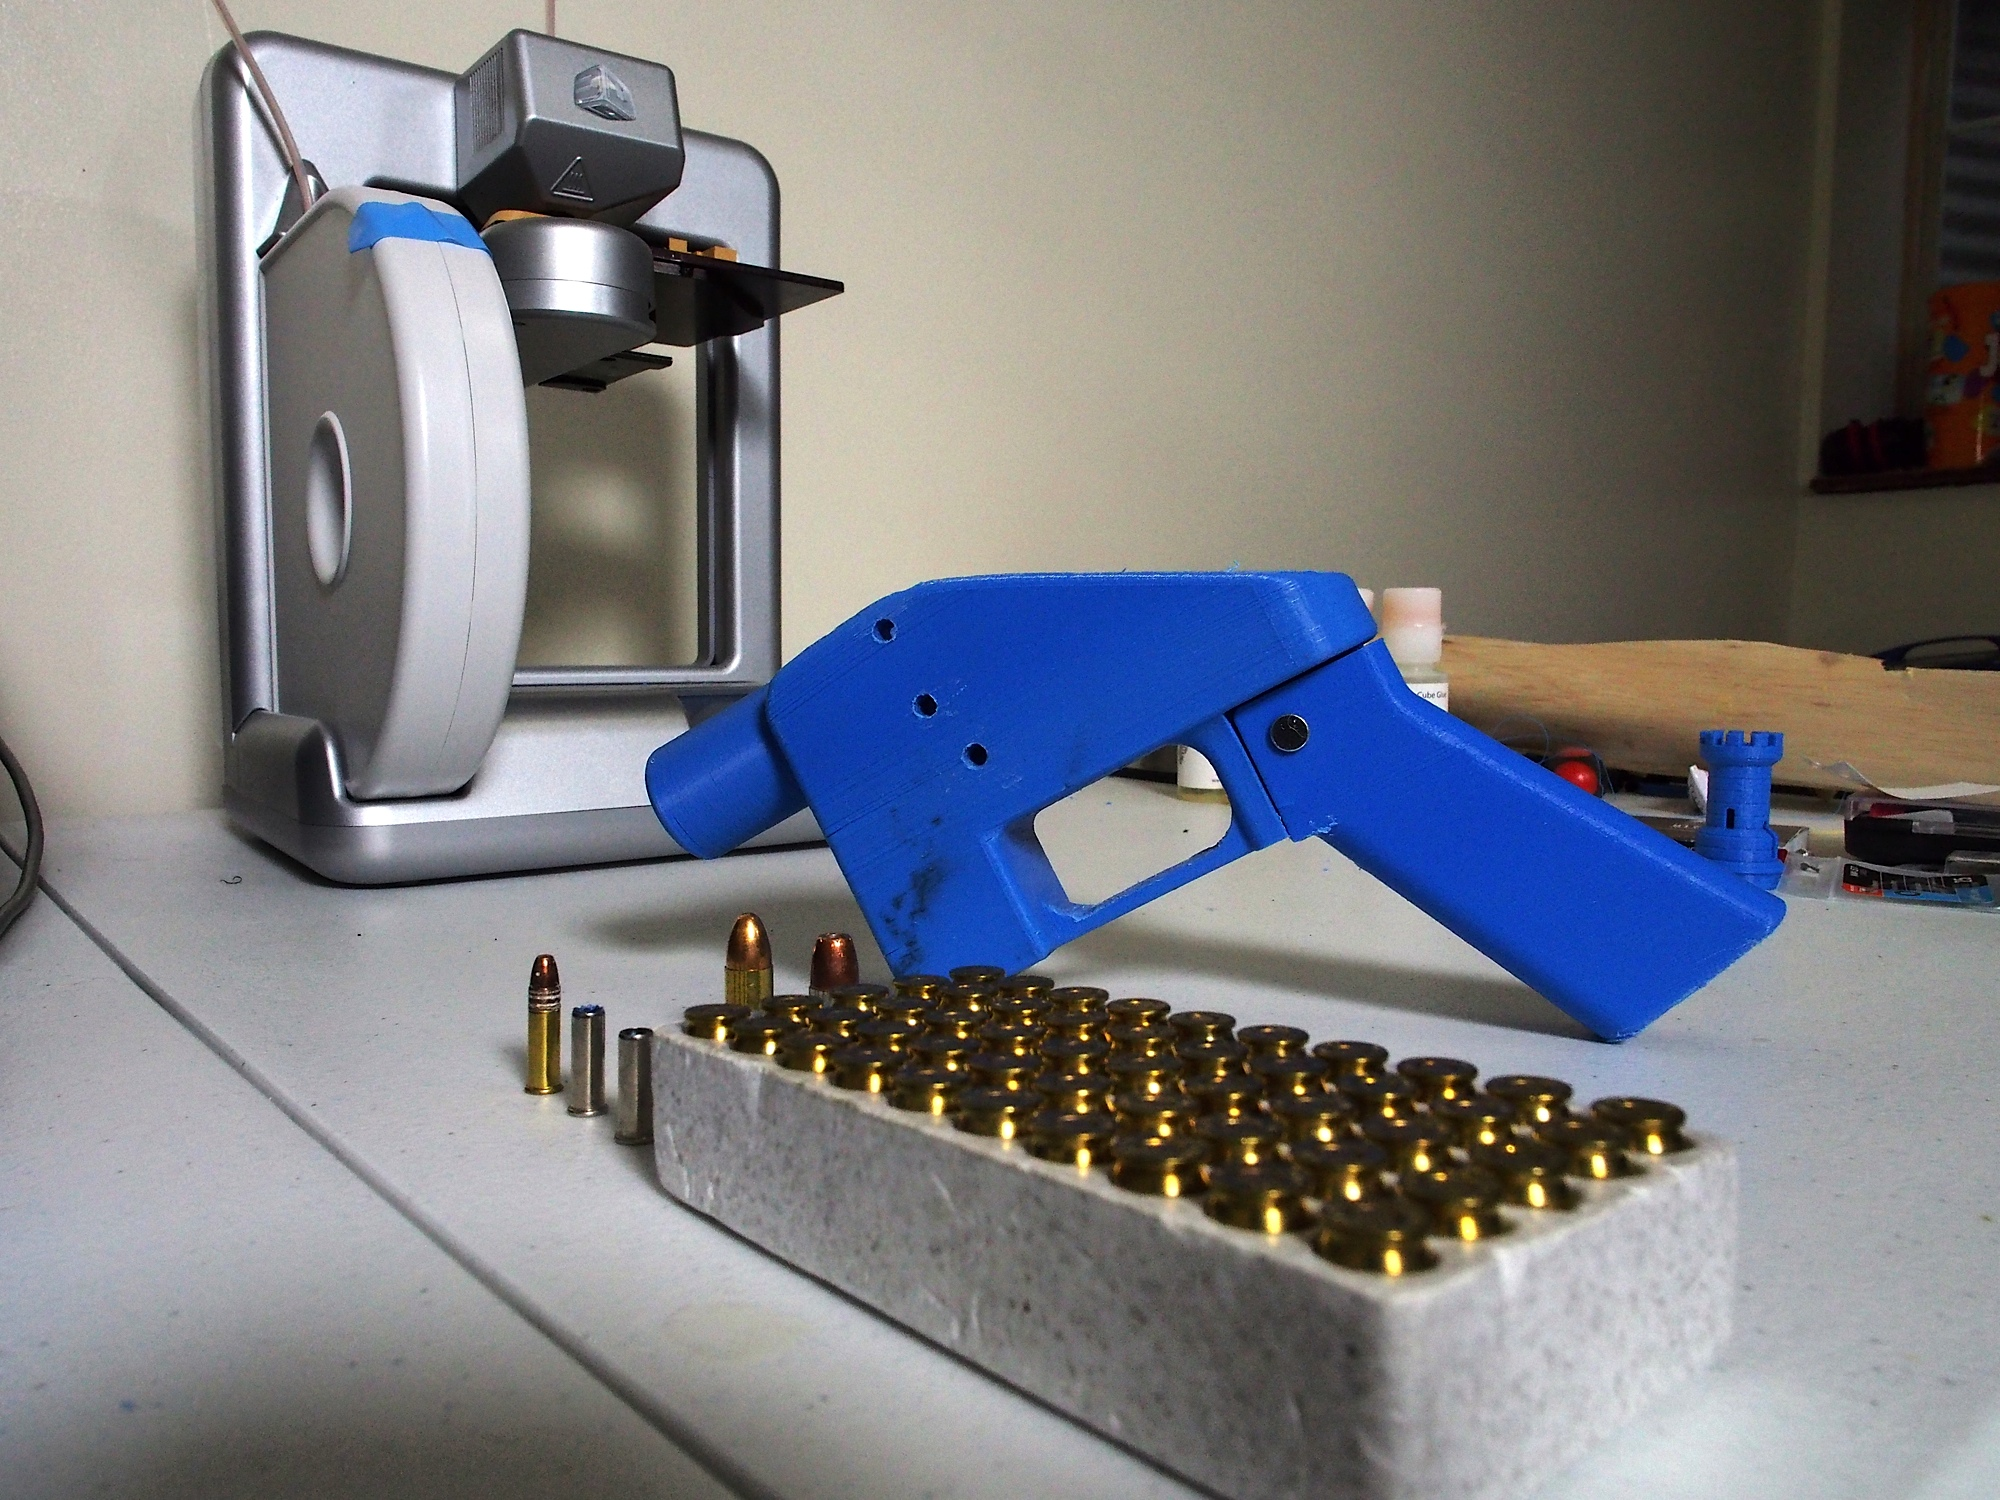 A Liberator pistol appears on July 11, 2013 next to the 3D printer on which its components were made. The single-shot handgun is the first firearm that can be made entirely with plastic components forged with a 3D printer and computer-aided design (CAD) files downloaded from the Internet. (Photo by Robert MacPherson/AFP/Getty Images)